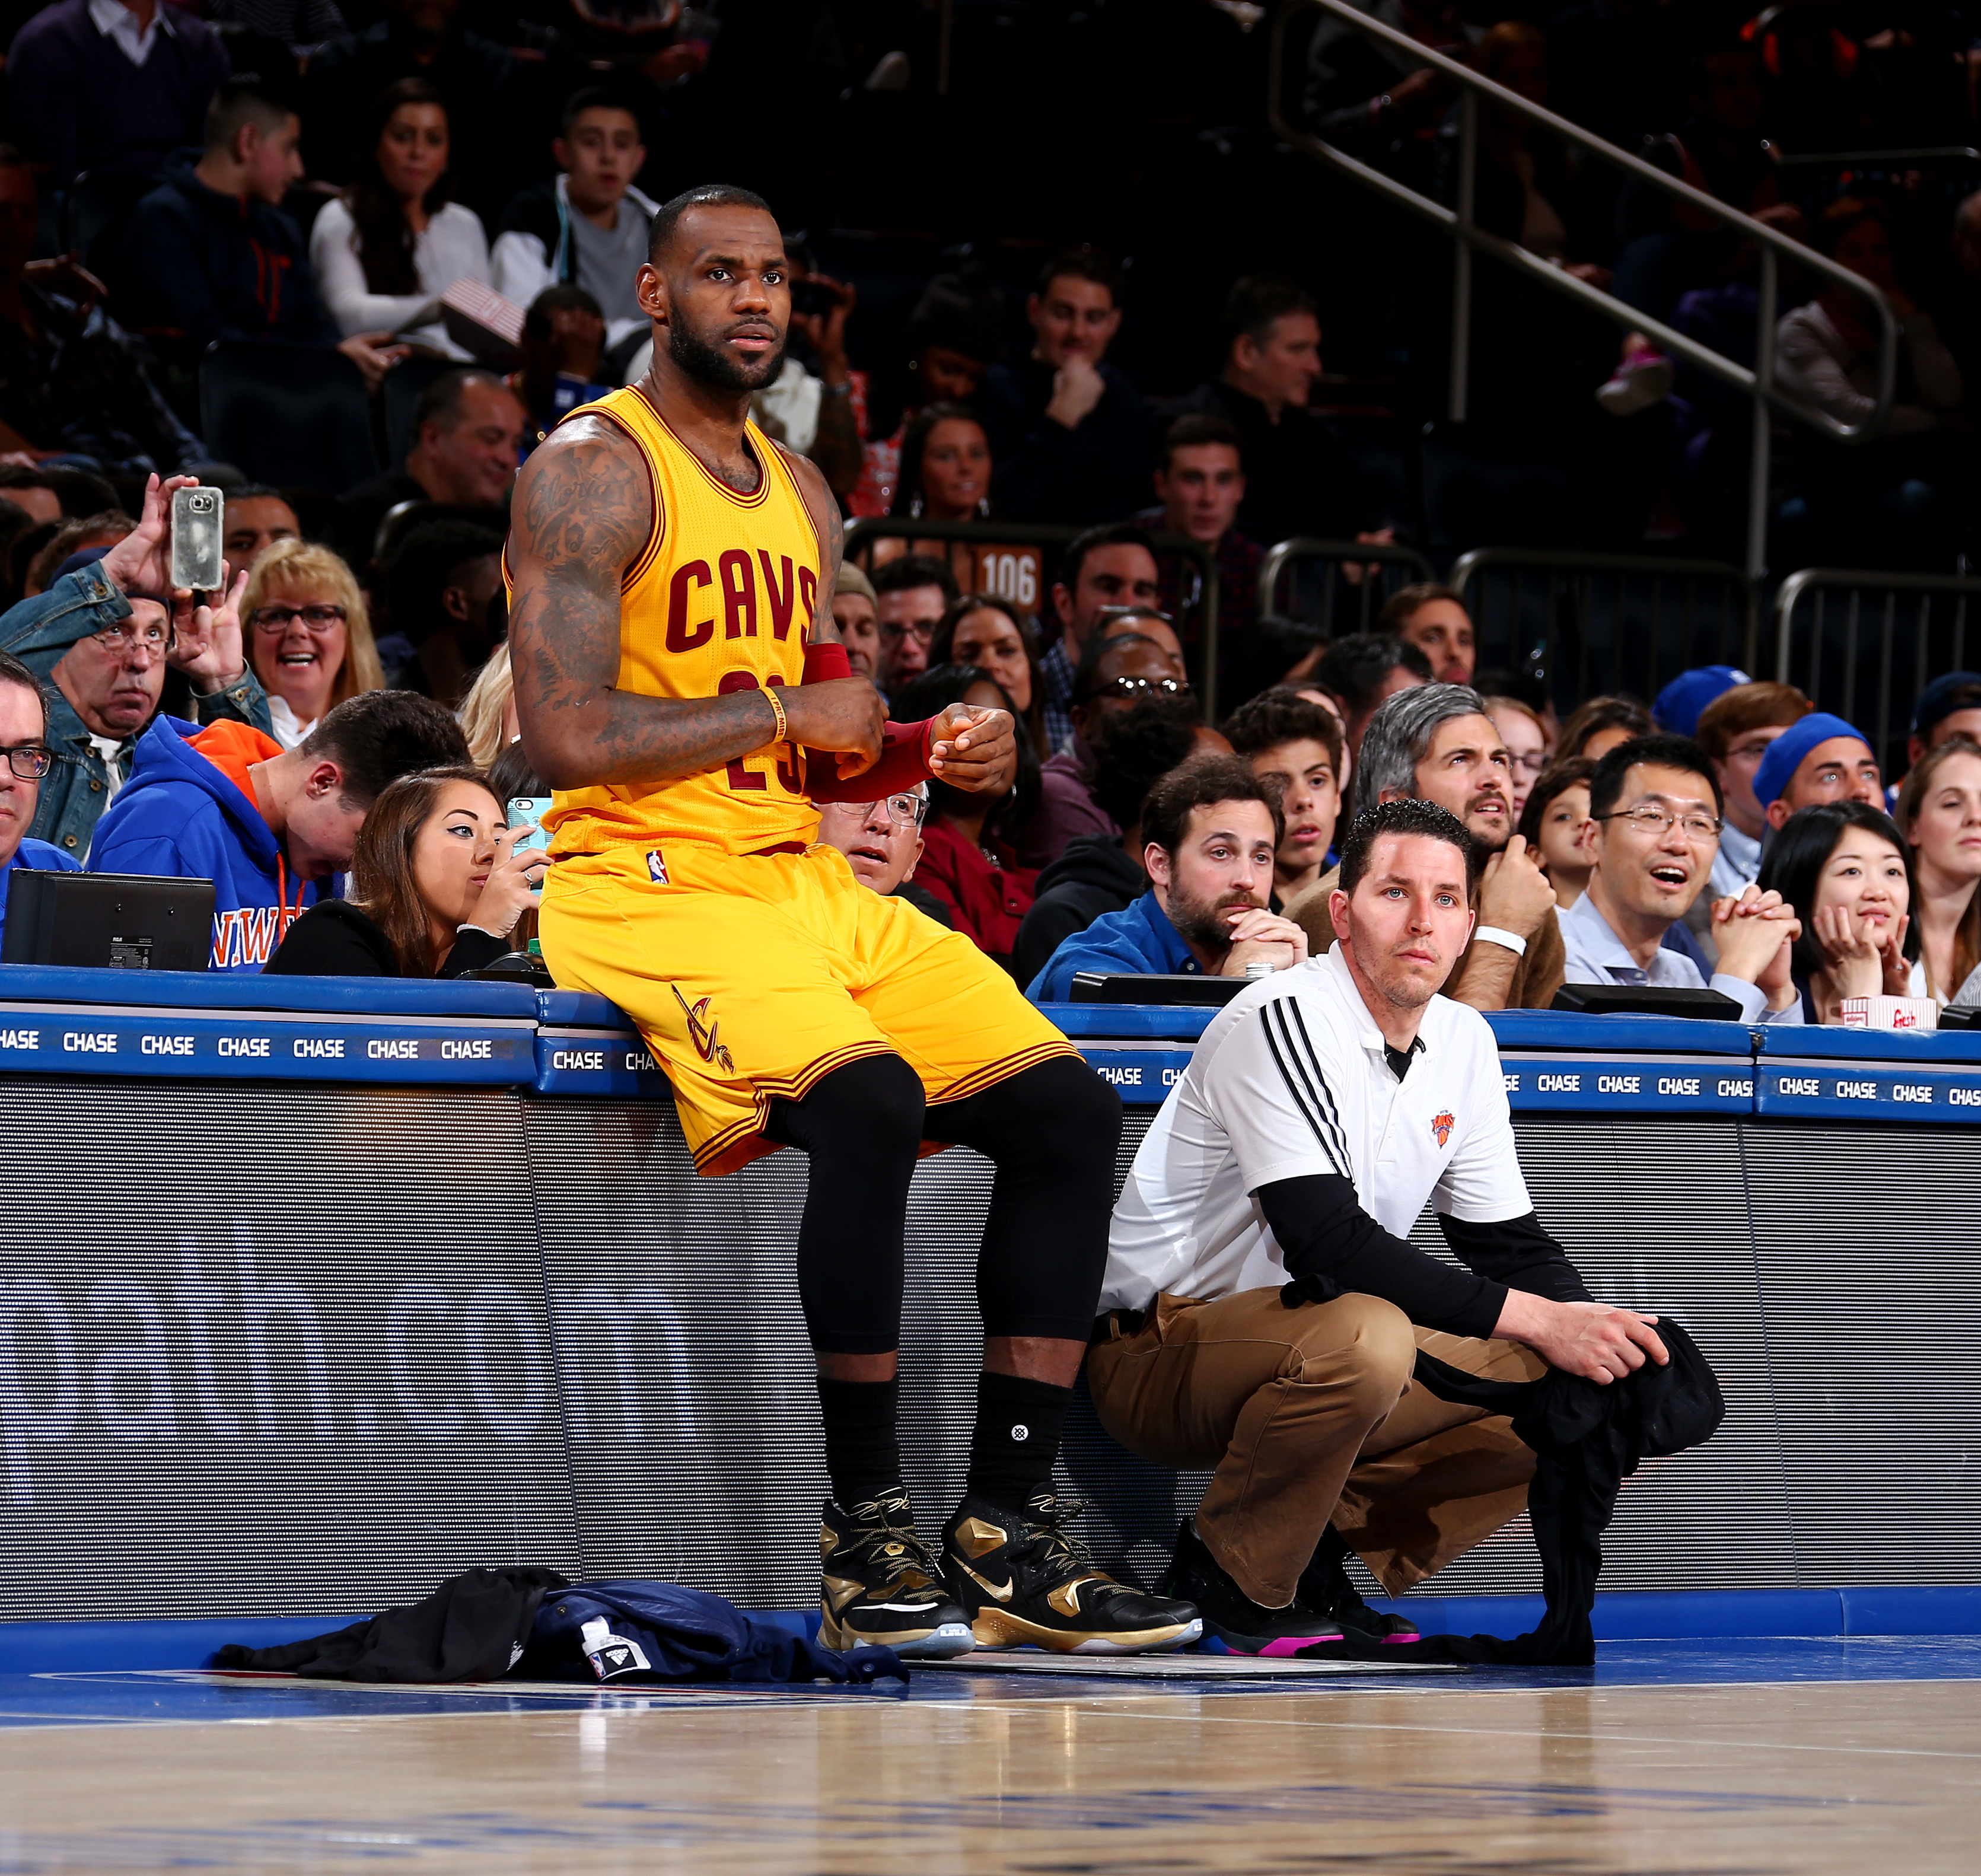 NEW YORK, NY - MARCH 26:  LeBron James #23 of the Cleveland Cavaliers is seen against the New York Knicks at Madison Square Garden in New York City on November 26, 2016.  (Photo by Nathaniel S. Butler/NBAE via Getty Images)